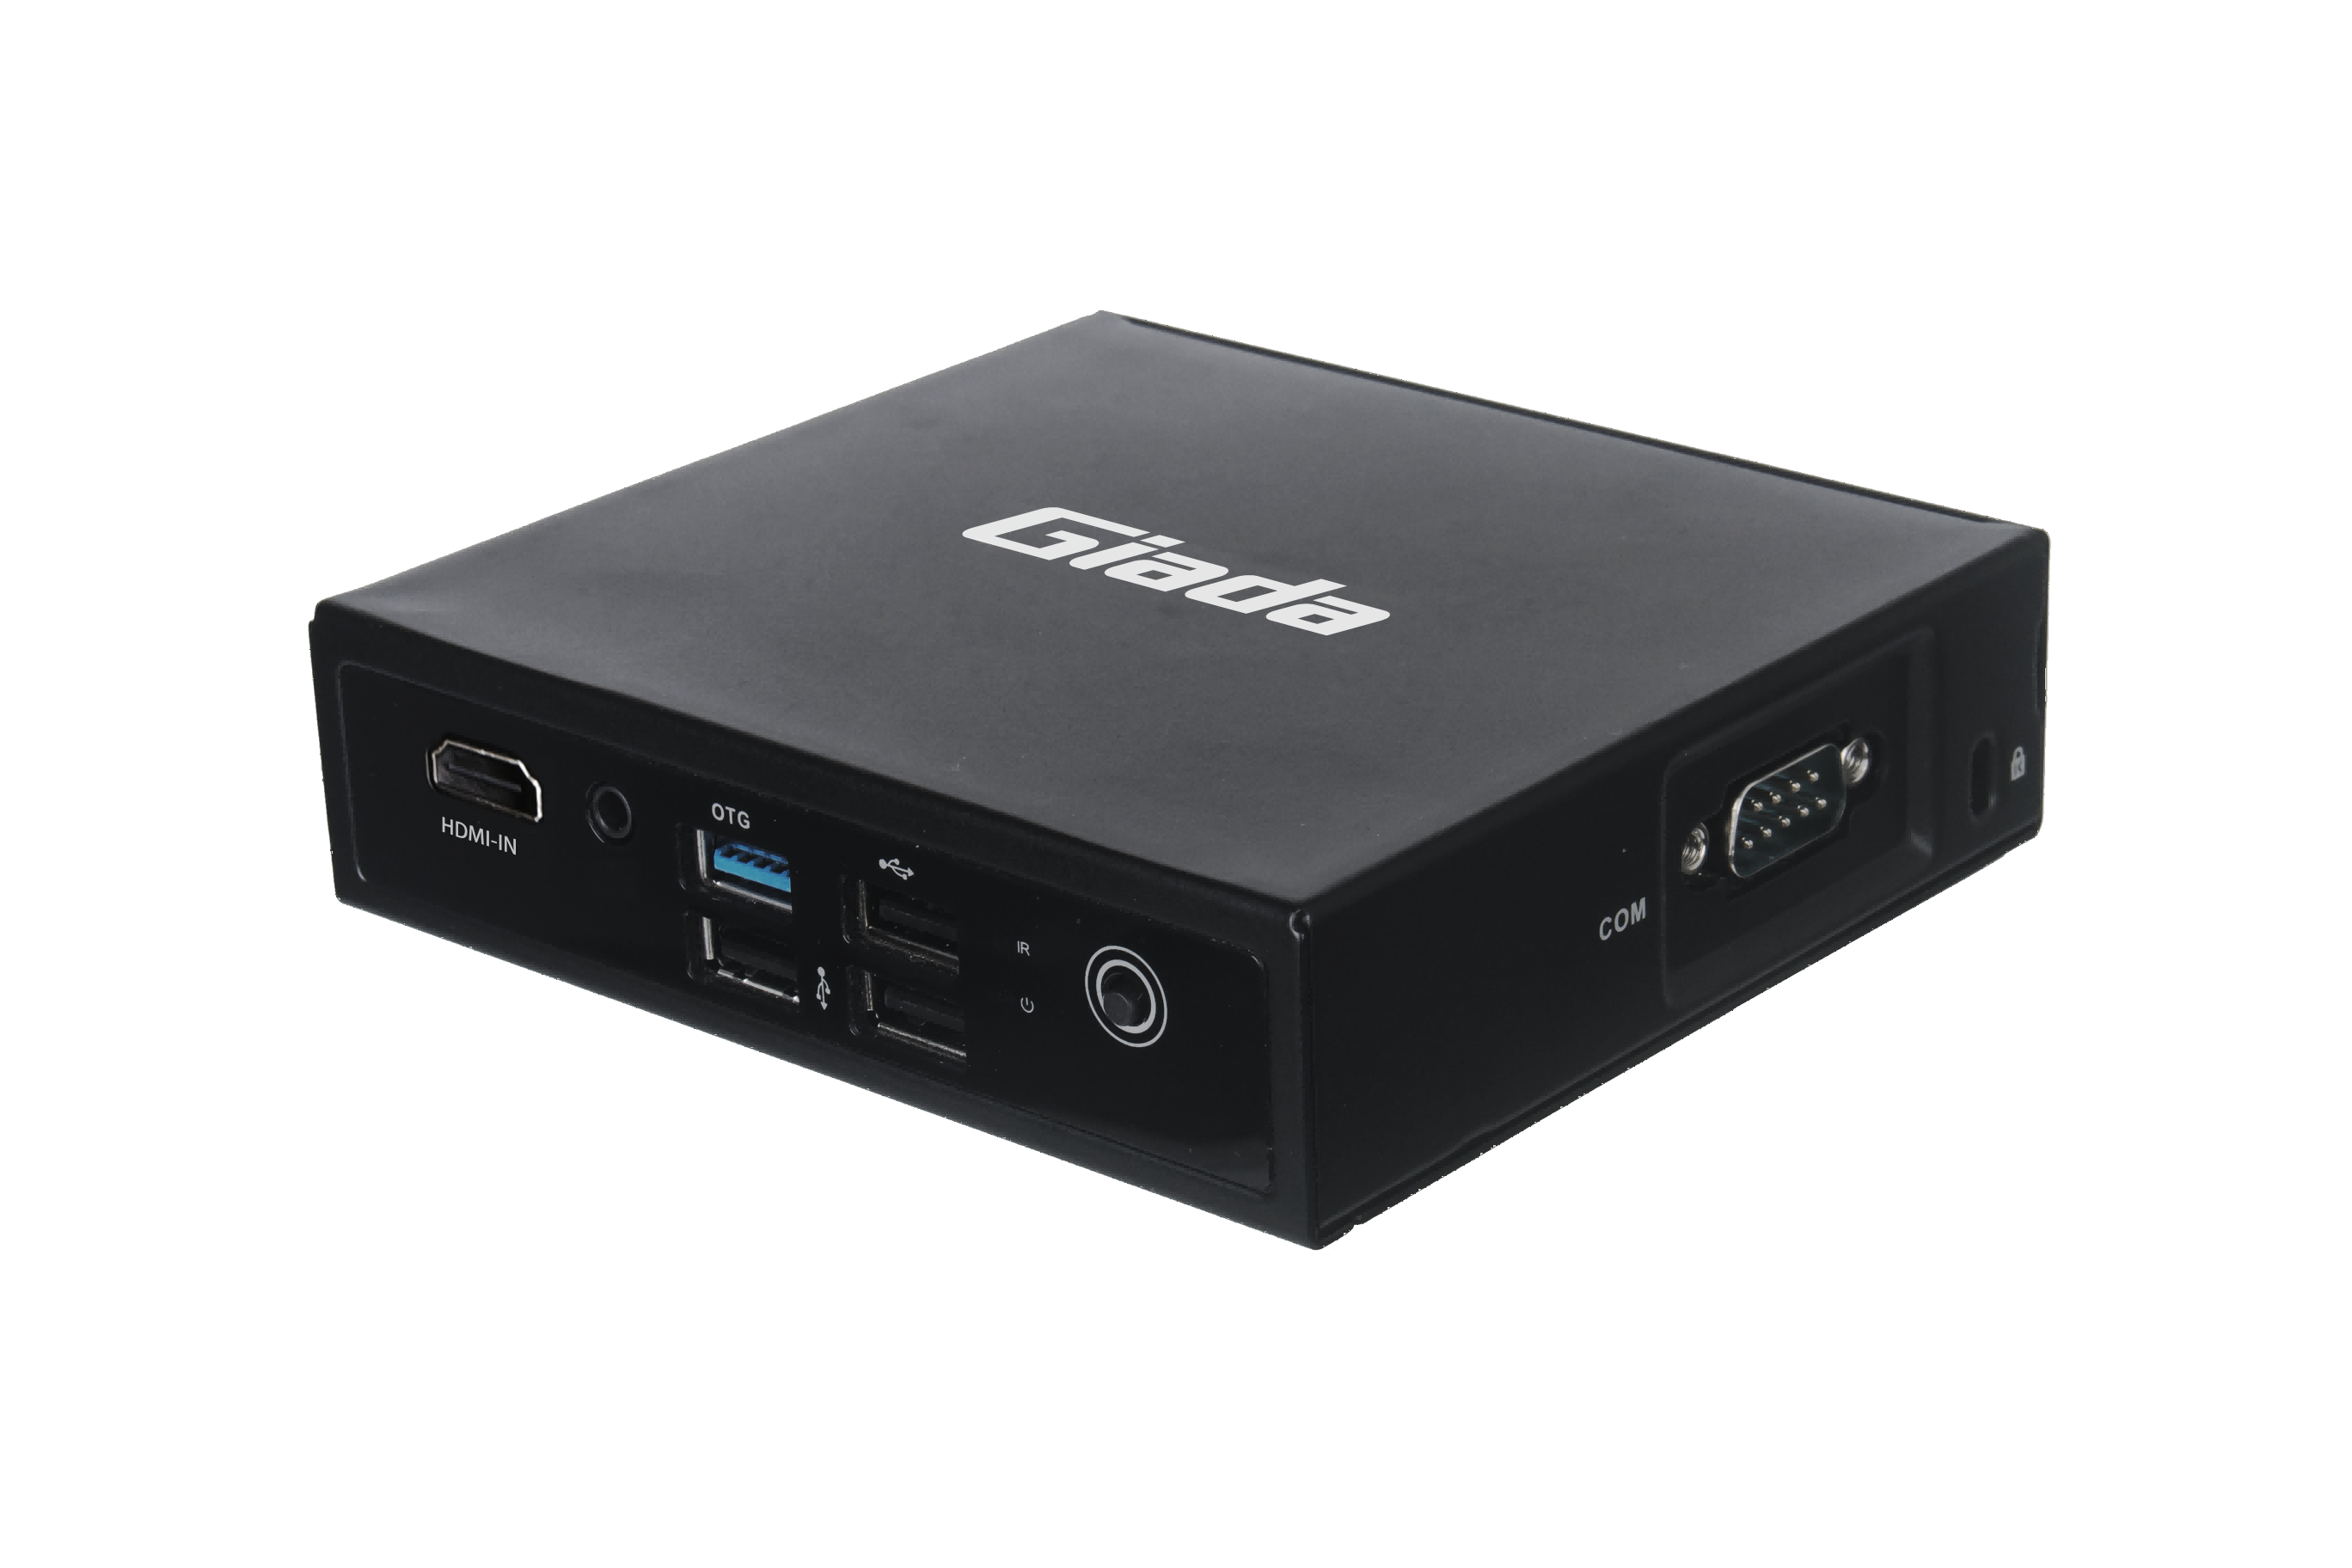 Giada DN75, RK3399 Dual core Cortex -A72 and quad core cortex A53, Mali-T860MP4, 4GB, 32GN emmc SSD, Android 7.1, 1*USB3.0(OTG),3*USB2.0, 2*HDMI, 116*6*30(mm),107.4*30mm - JAHC support